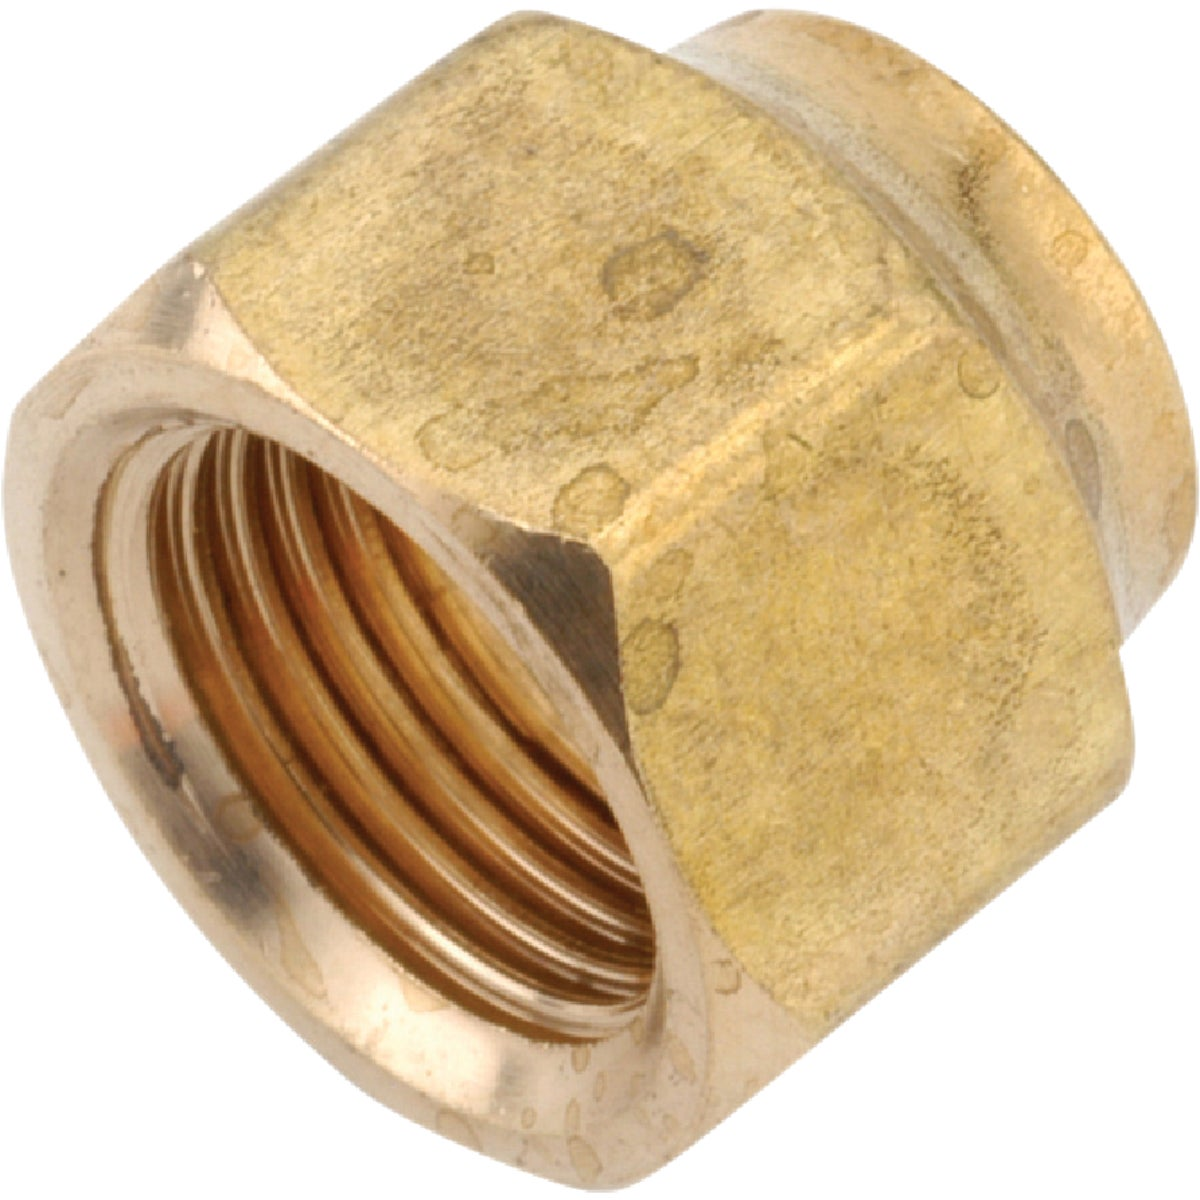 "1/4"" FLARE NUT - 754018-04 by Anderson Metals Corp"